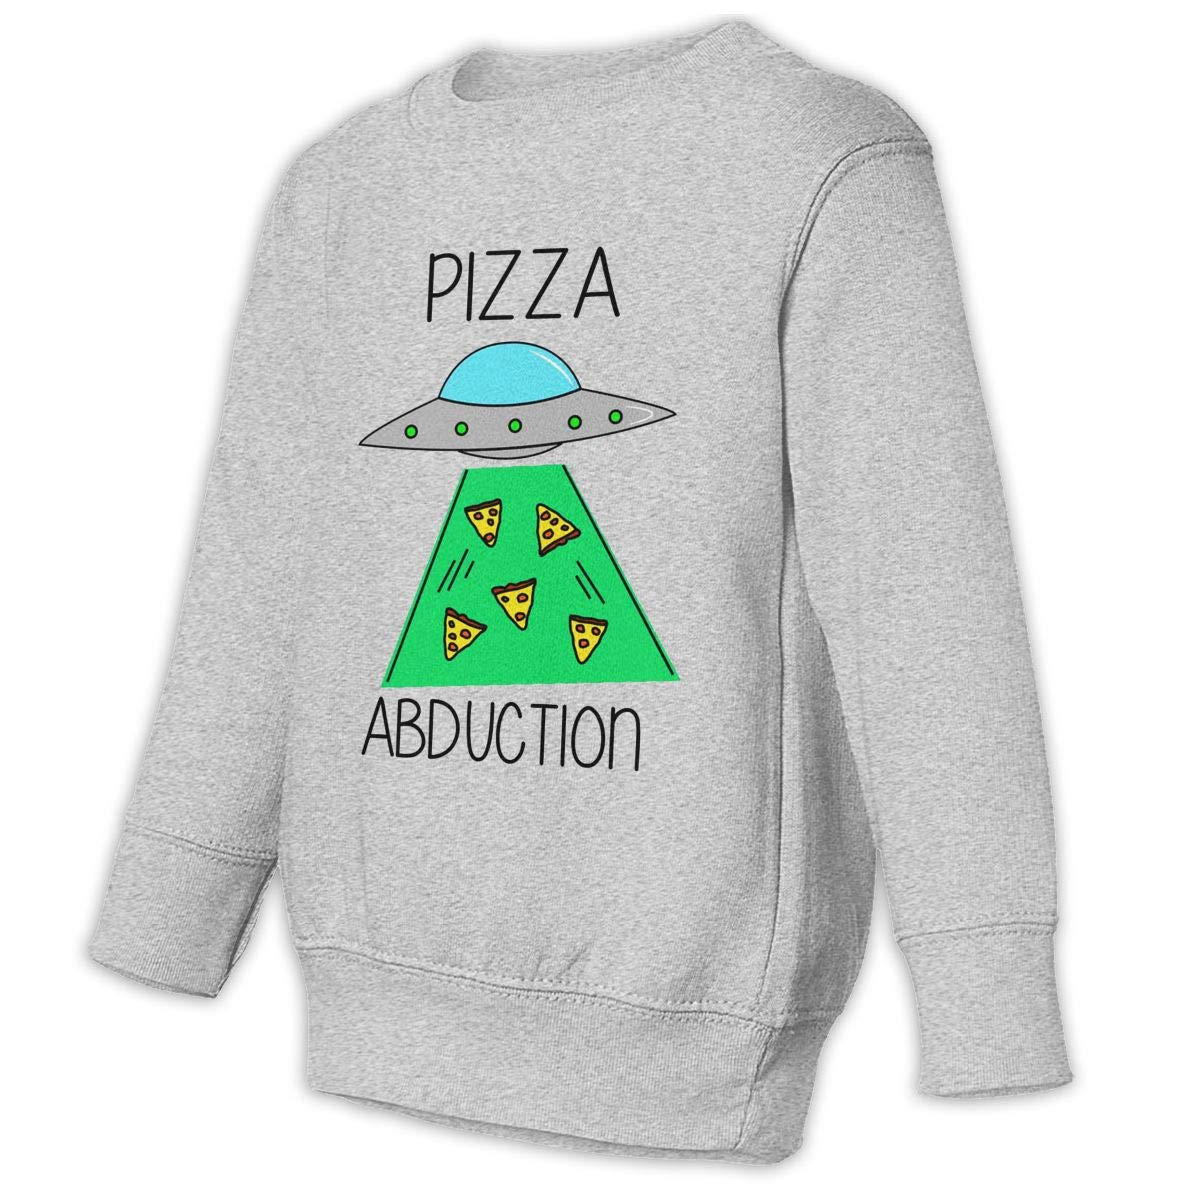 Funny Pizza Abduction Baby Sweatshirt Stylish Toddler Hoodies Comfortable Outfits